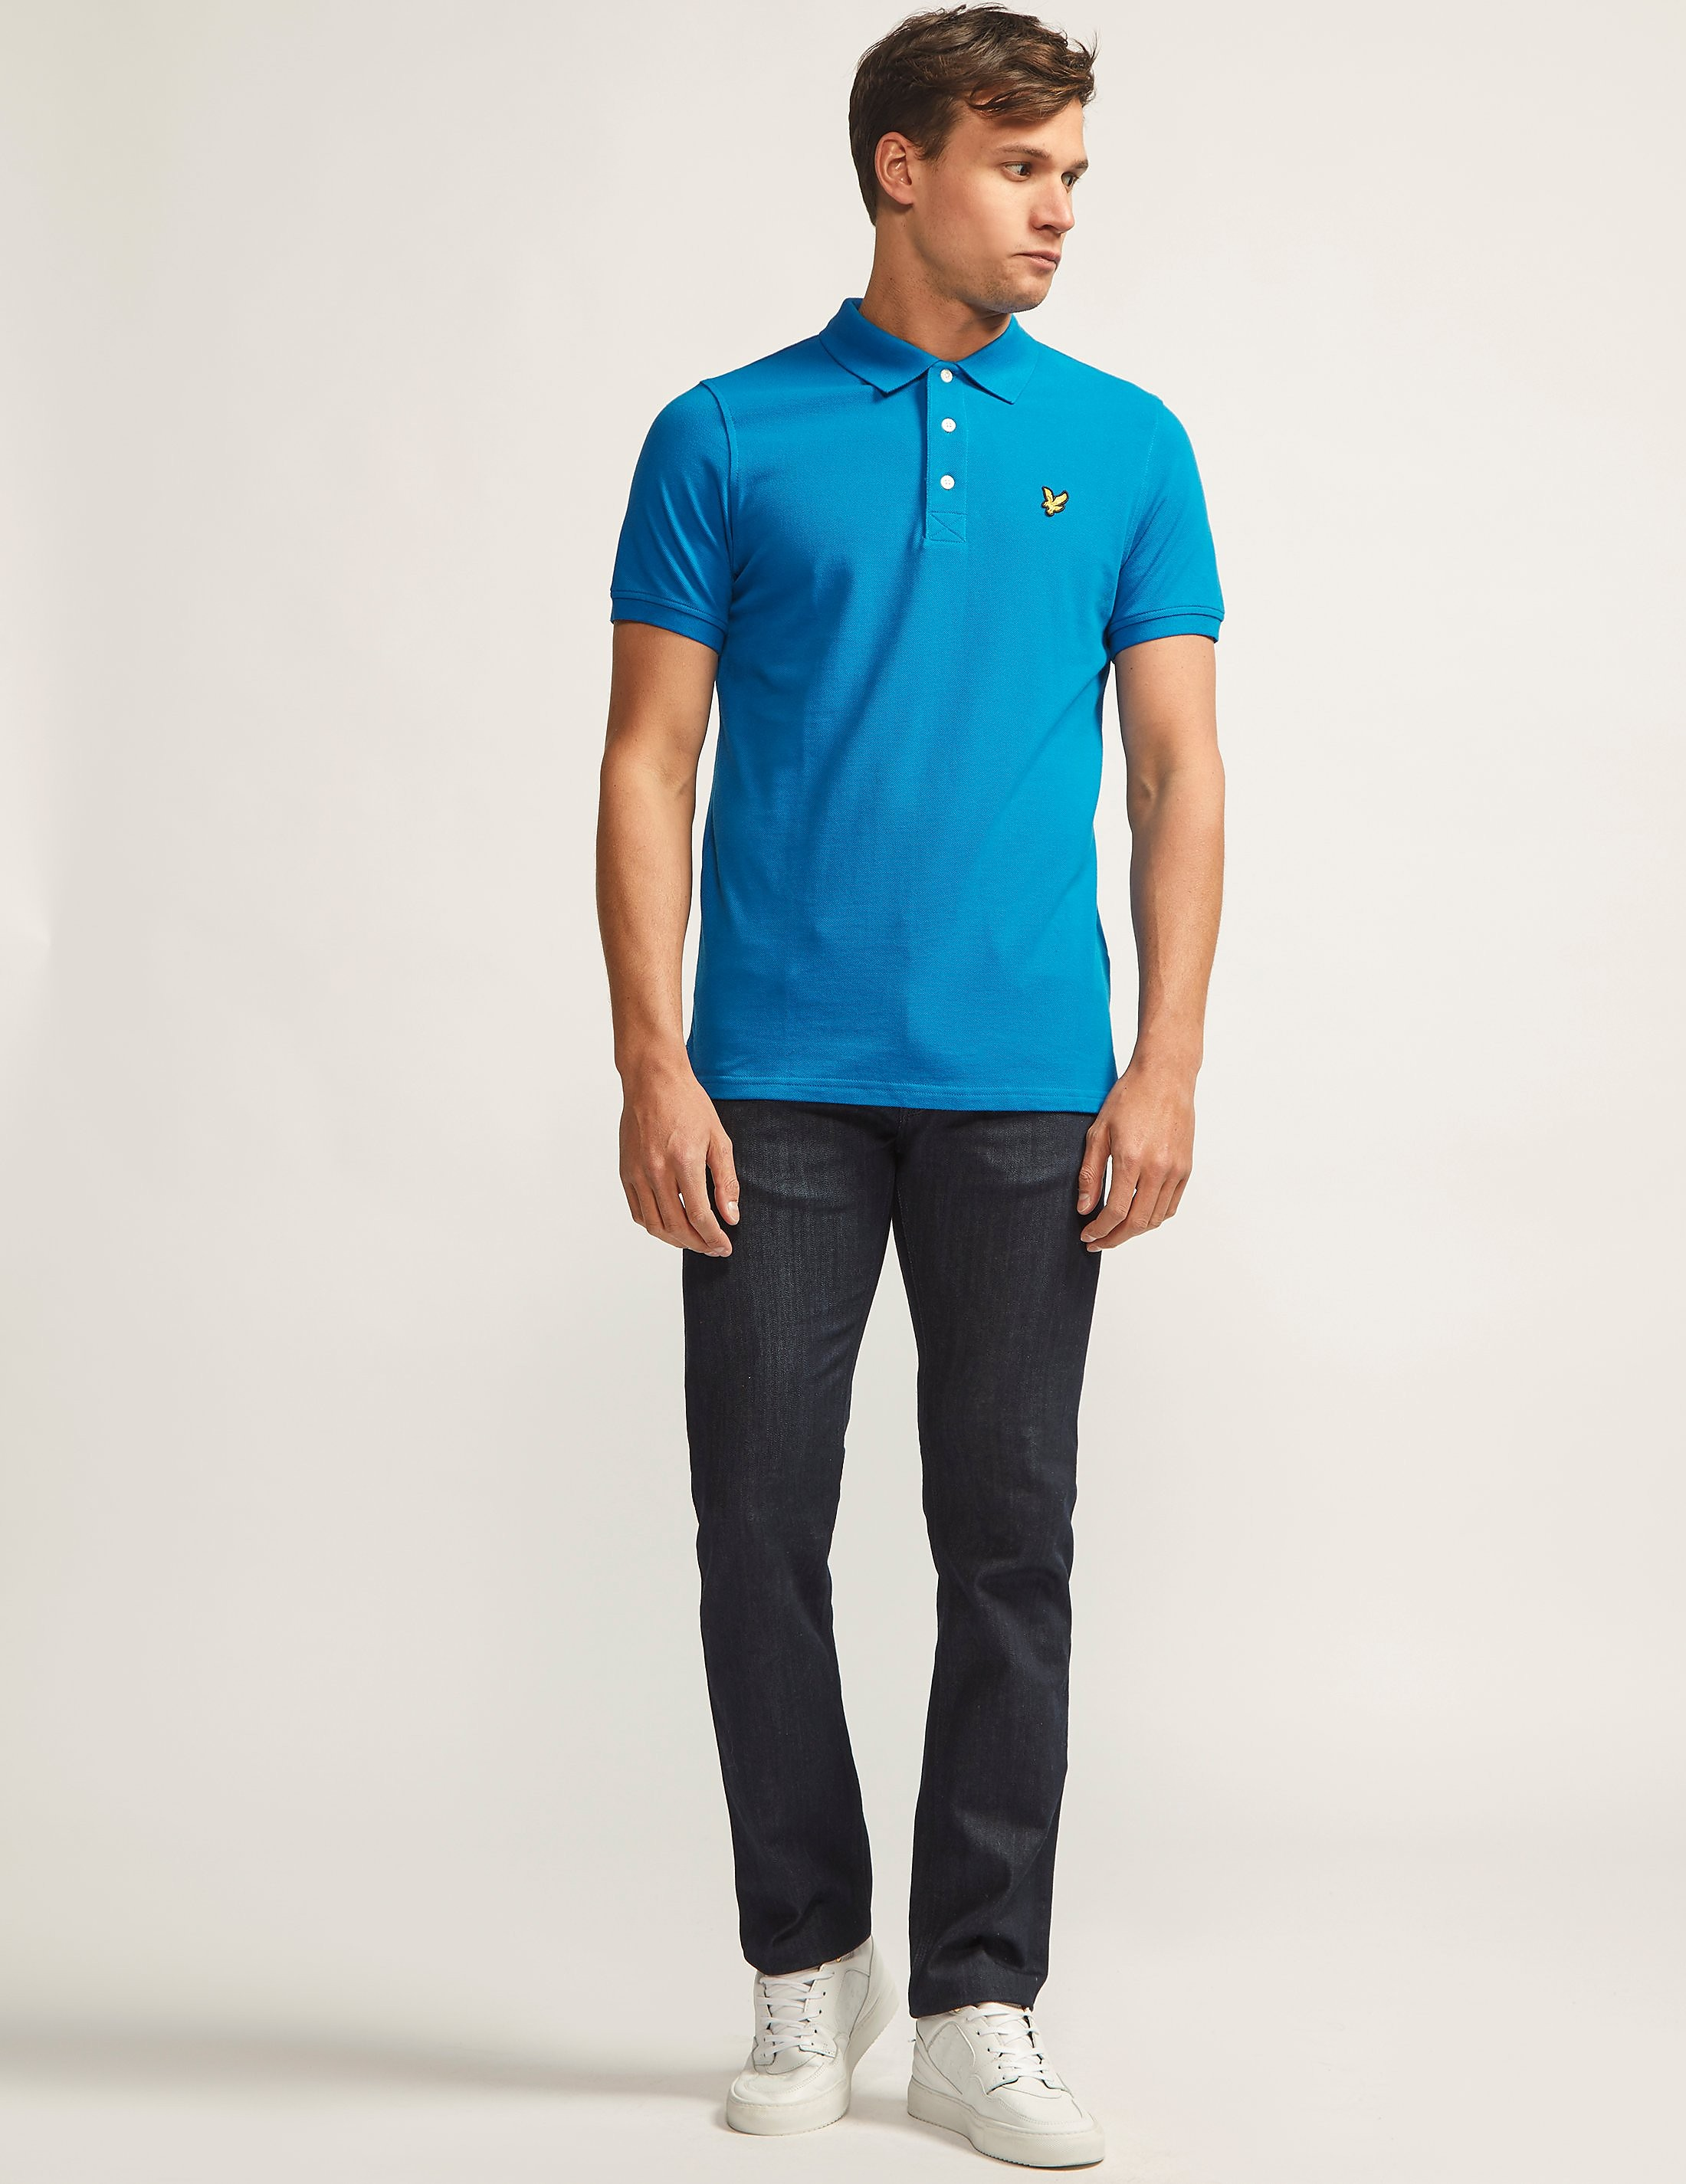 Lyle & Scott Classic Short Sleeve Polo Shirt